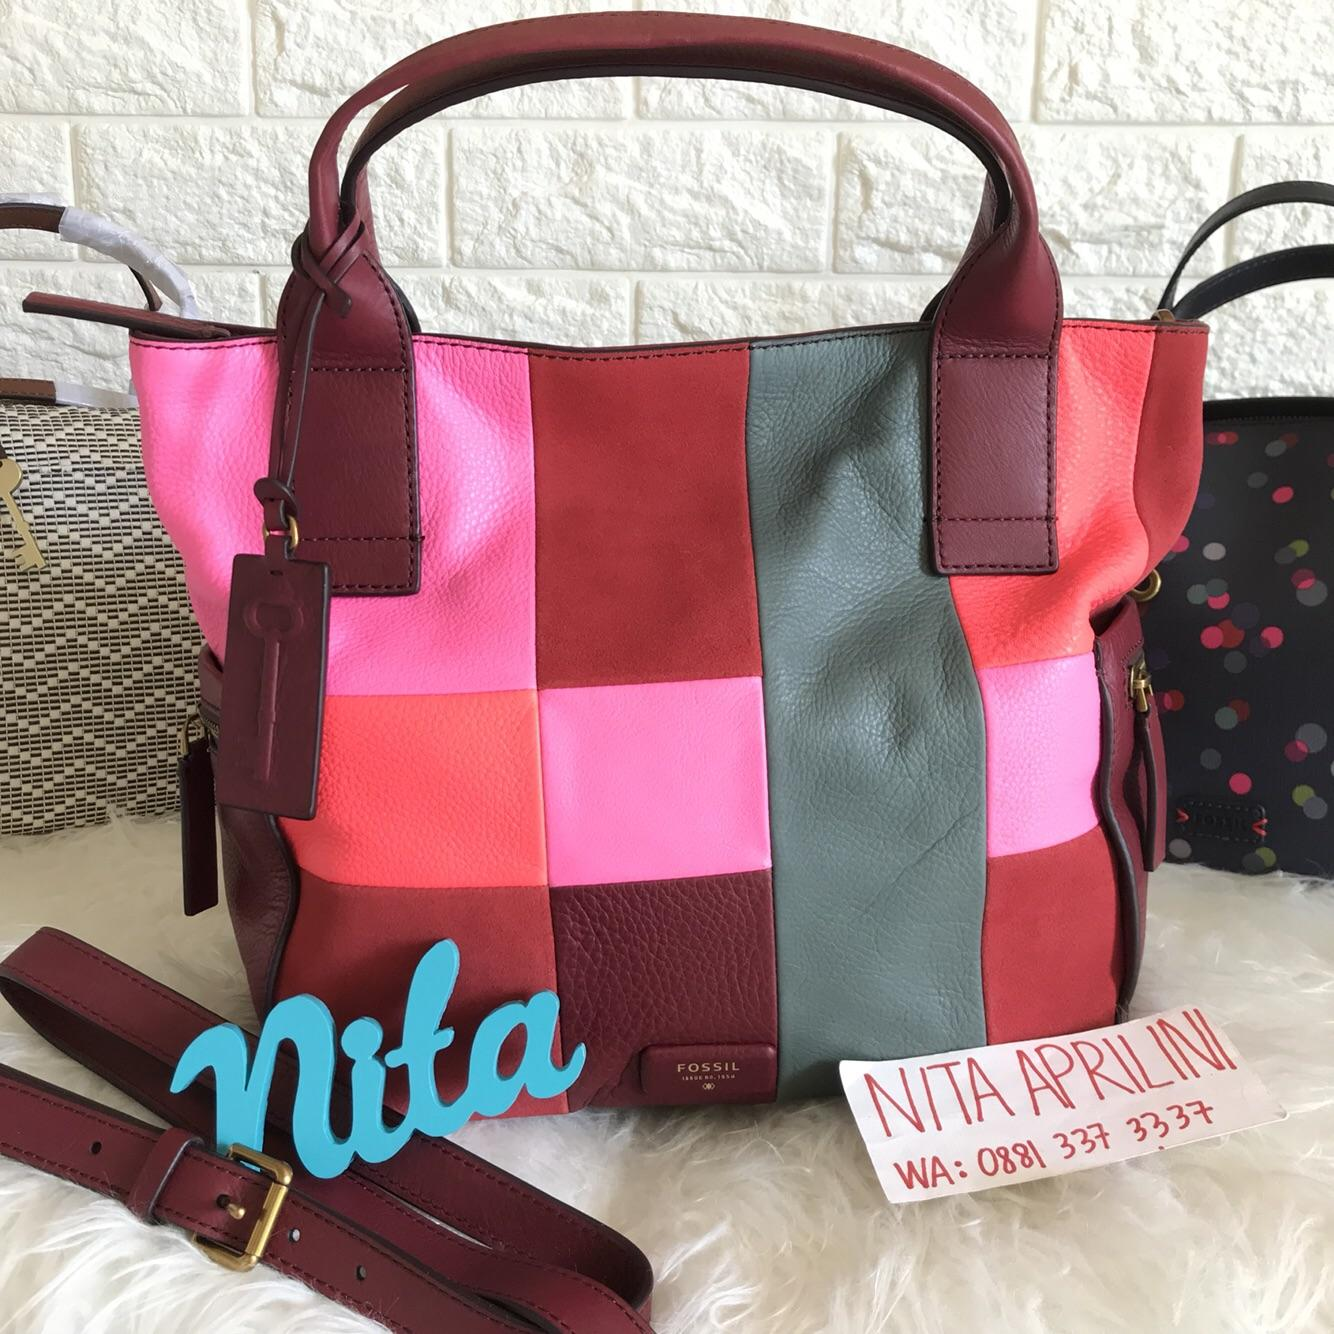 Fossil Passport East West Satchel Blue Floral Zb 6762452 Daftar Rachel Tote Red Multi 6818995 Tas Emerson Bright Patchwork Pw Size Large Original Asli Authentic Leather Kulit